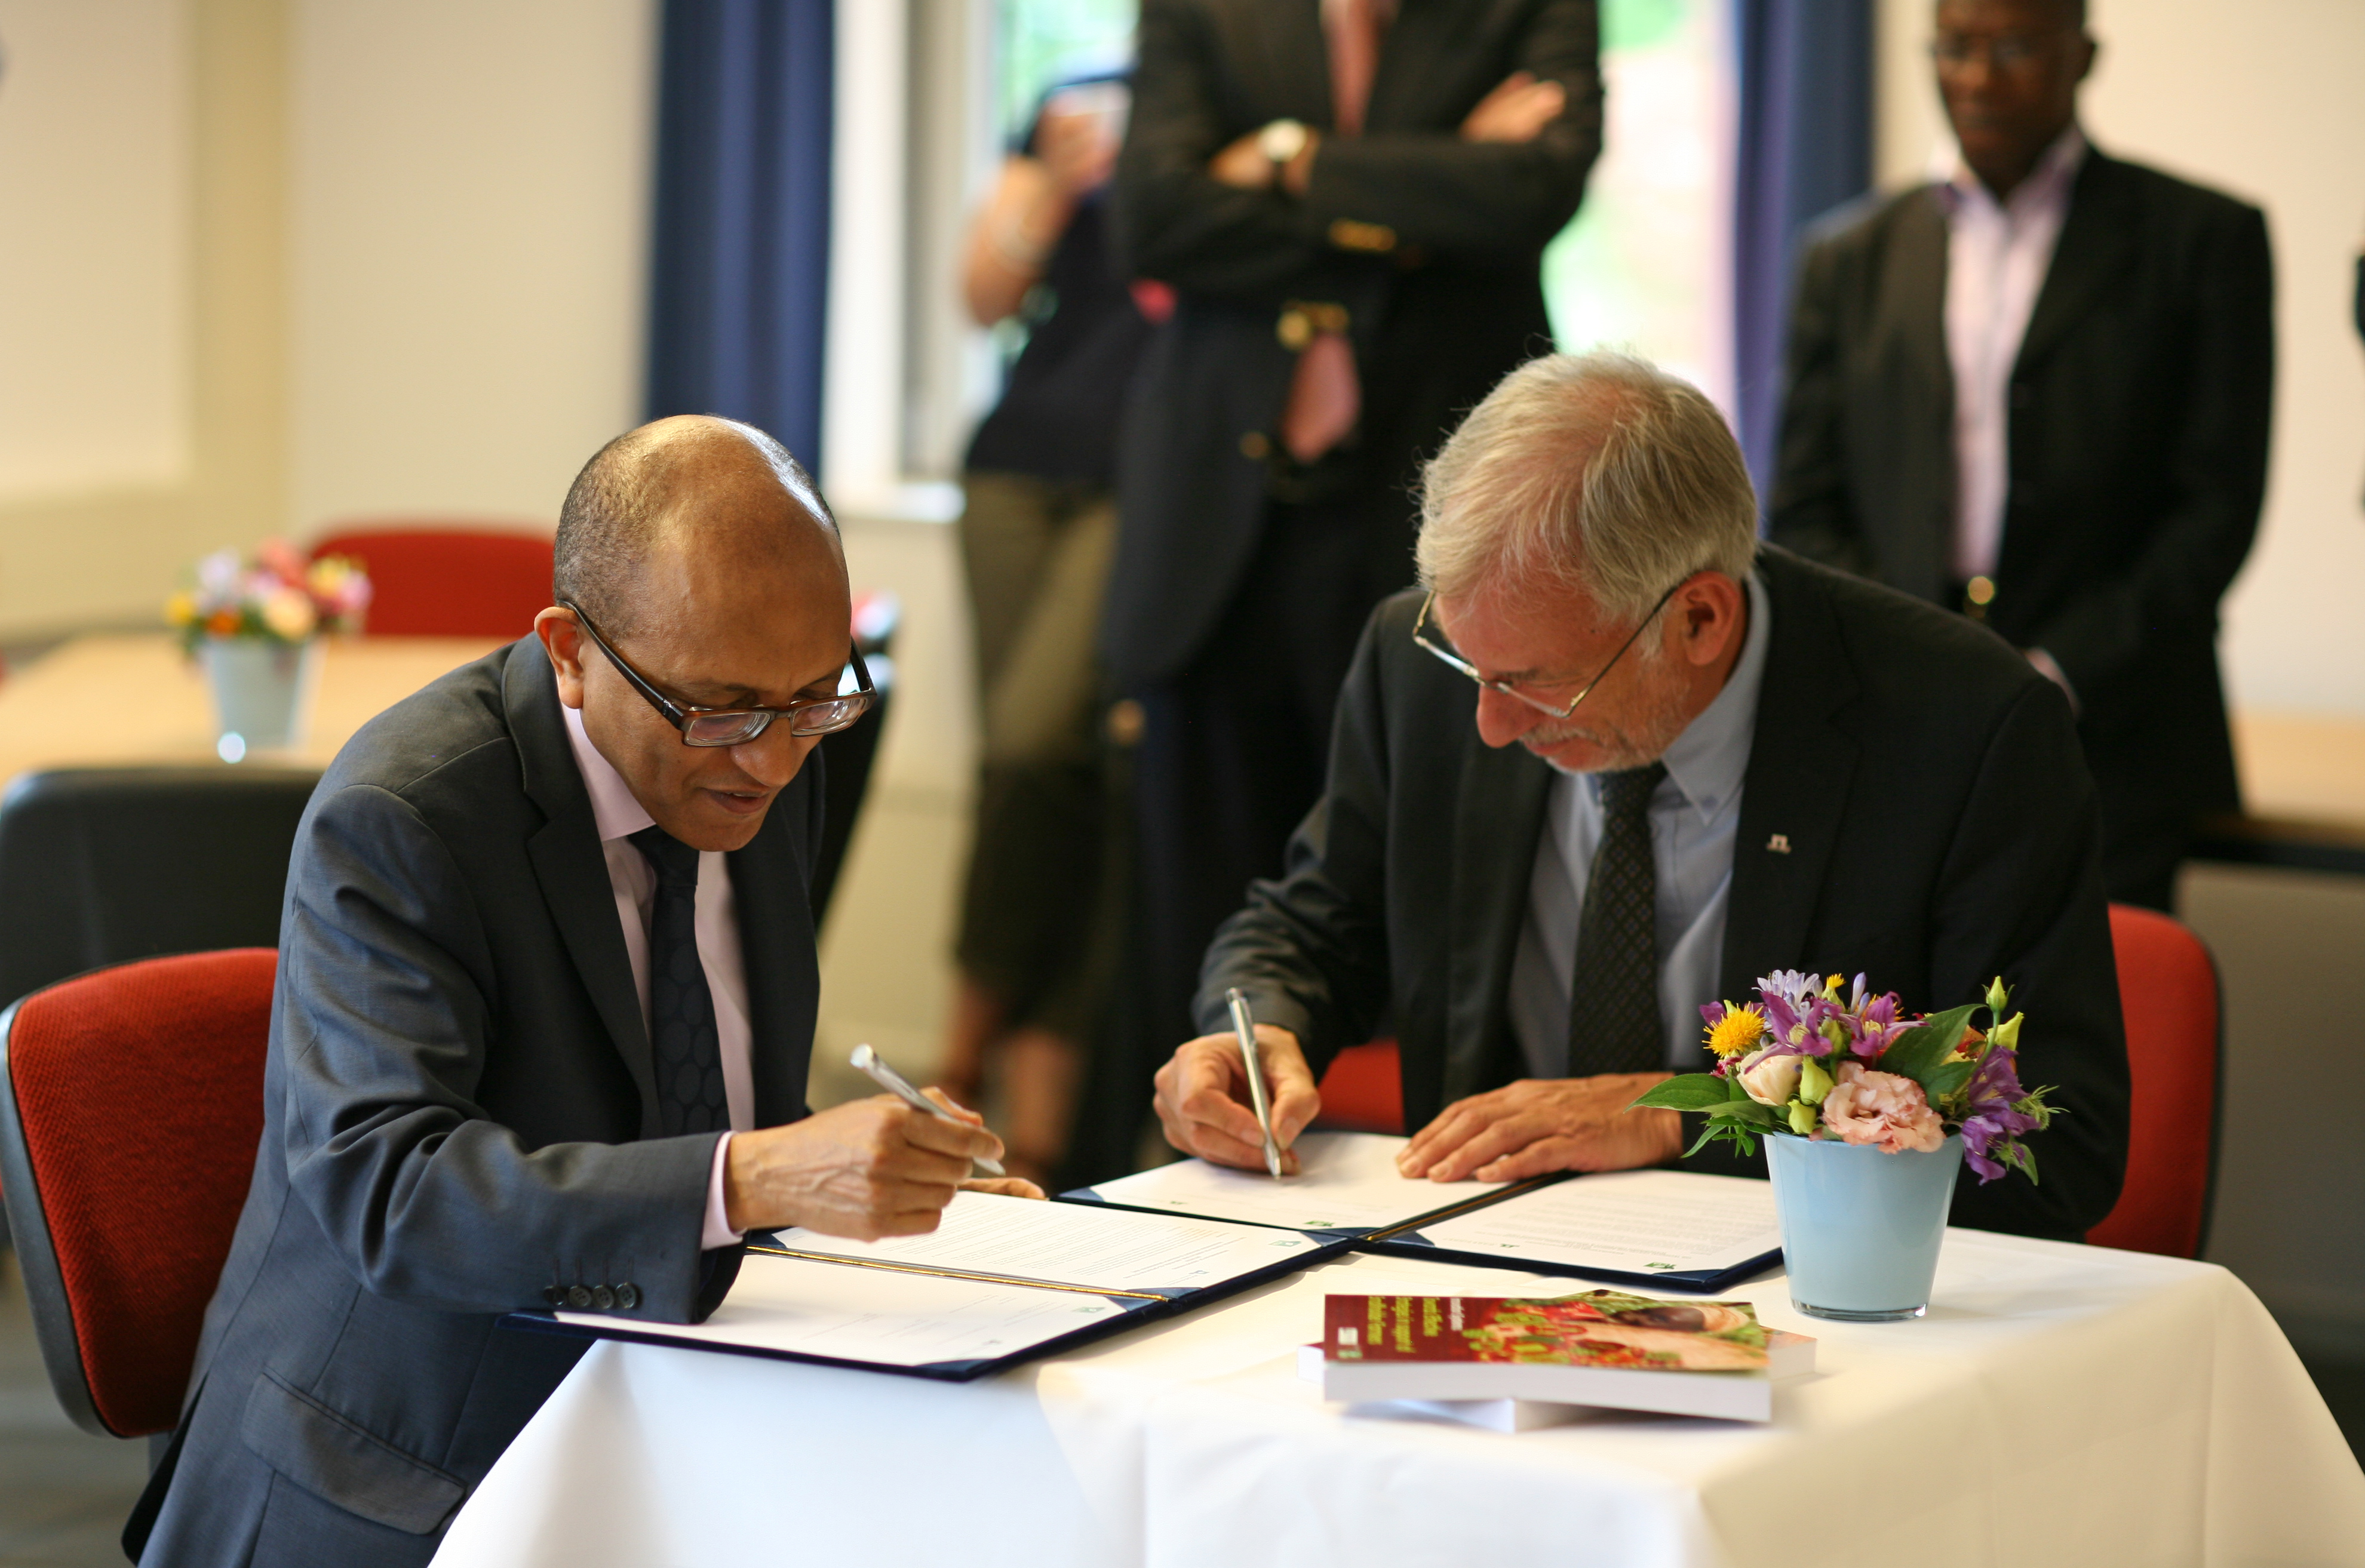 CTA and Wageningen University & Research join forces for agenda setting